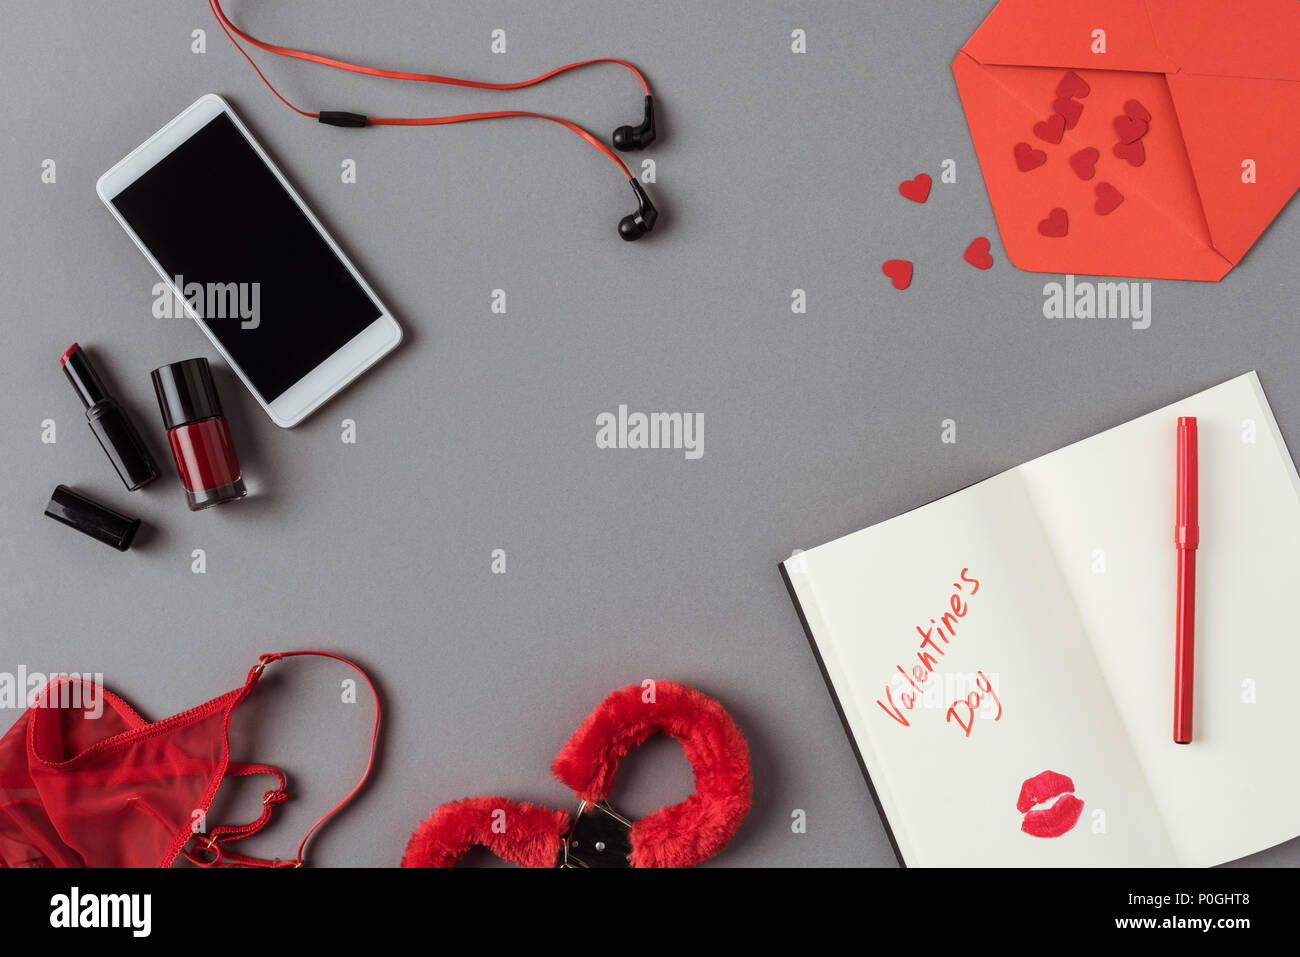 top view of smartphone, notebook with lipstick and handcuffs on gray surface - Stock Image